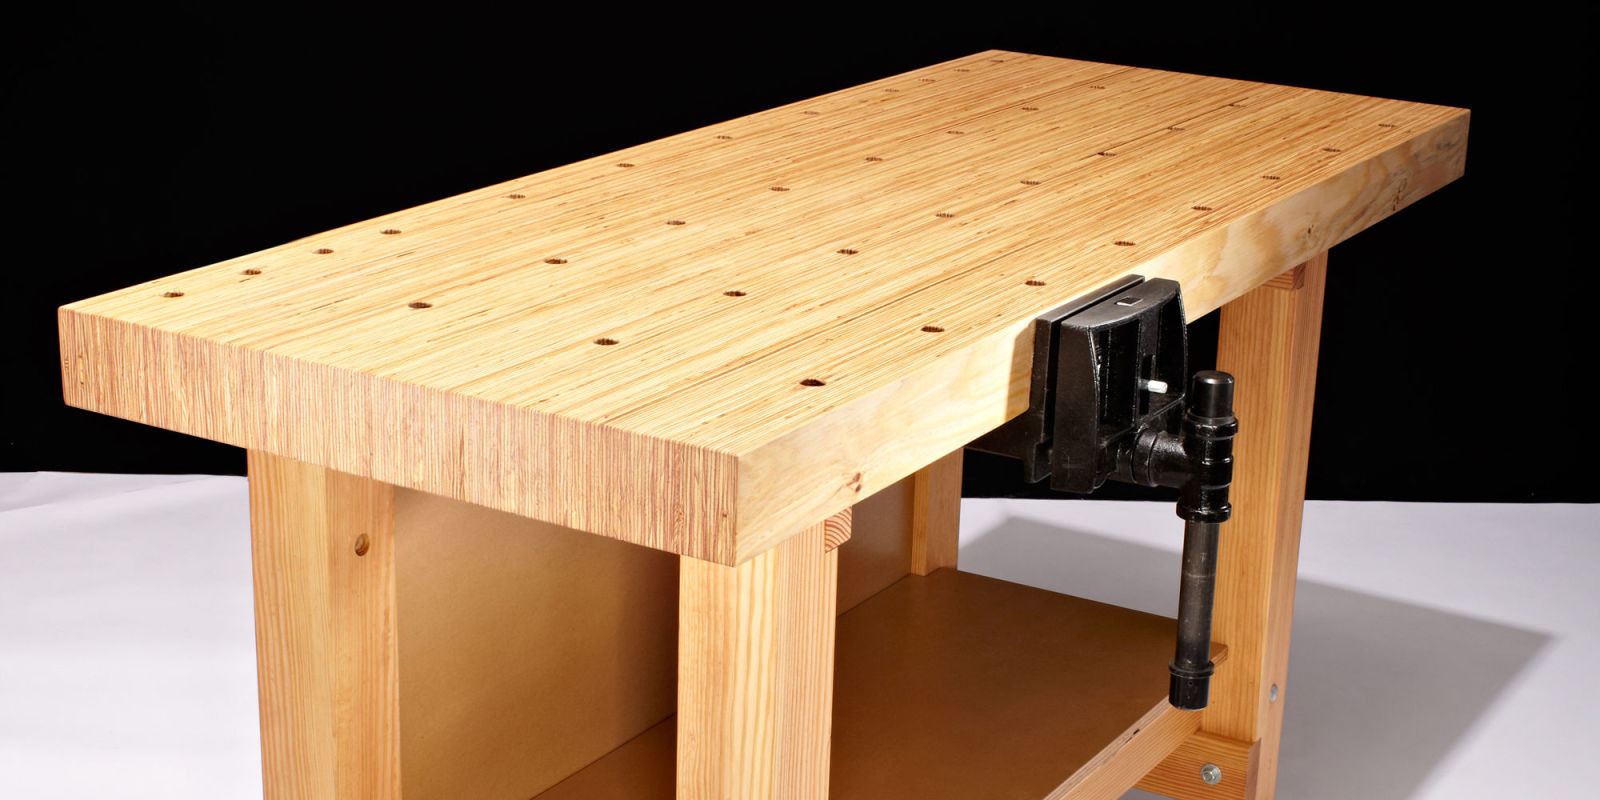 Best ideas about DIY Wood Work . Save or Pin How to Build This DIY Workbench Now.